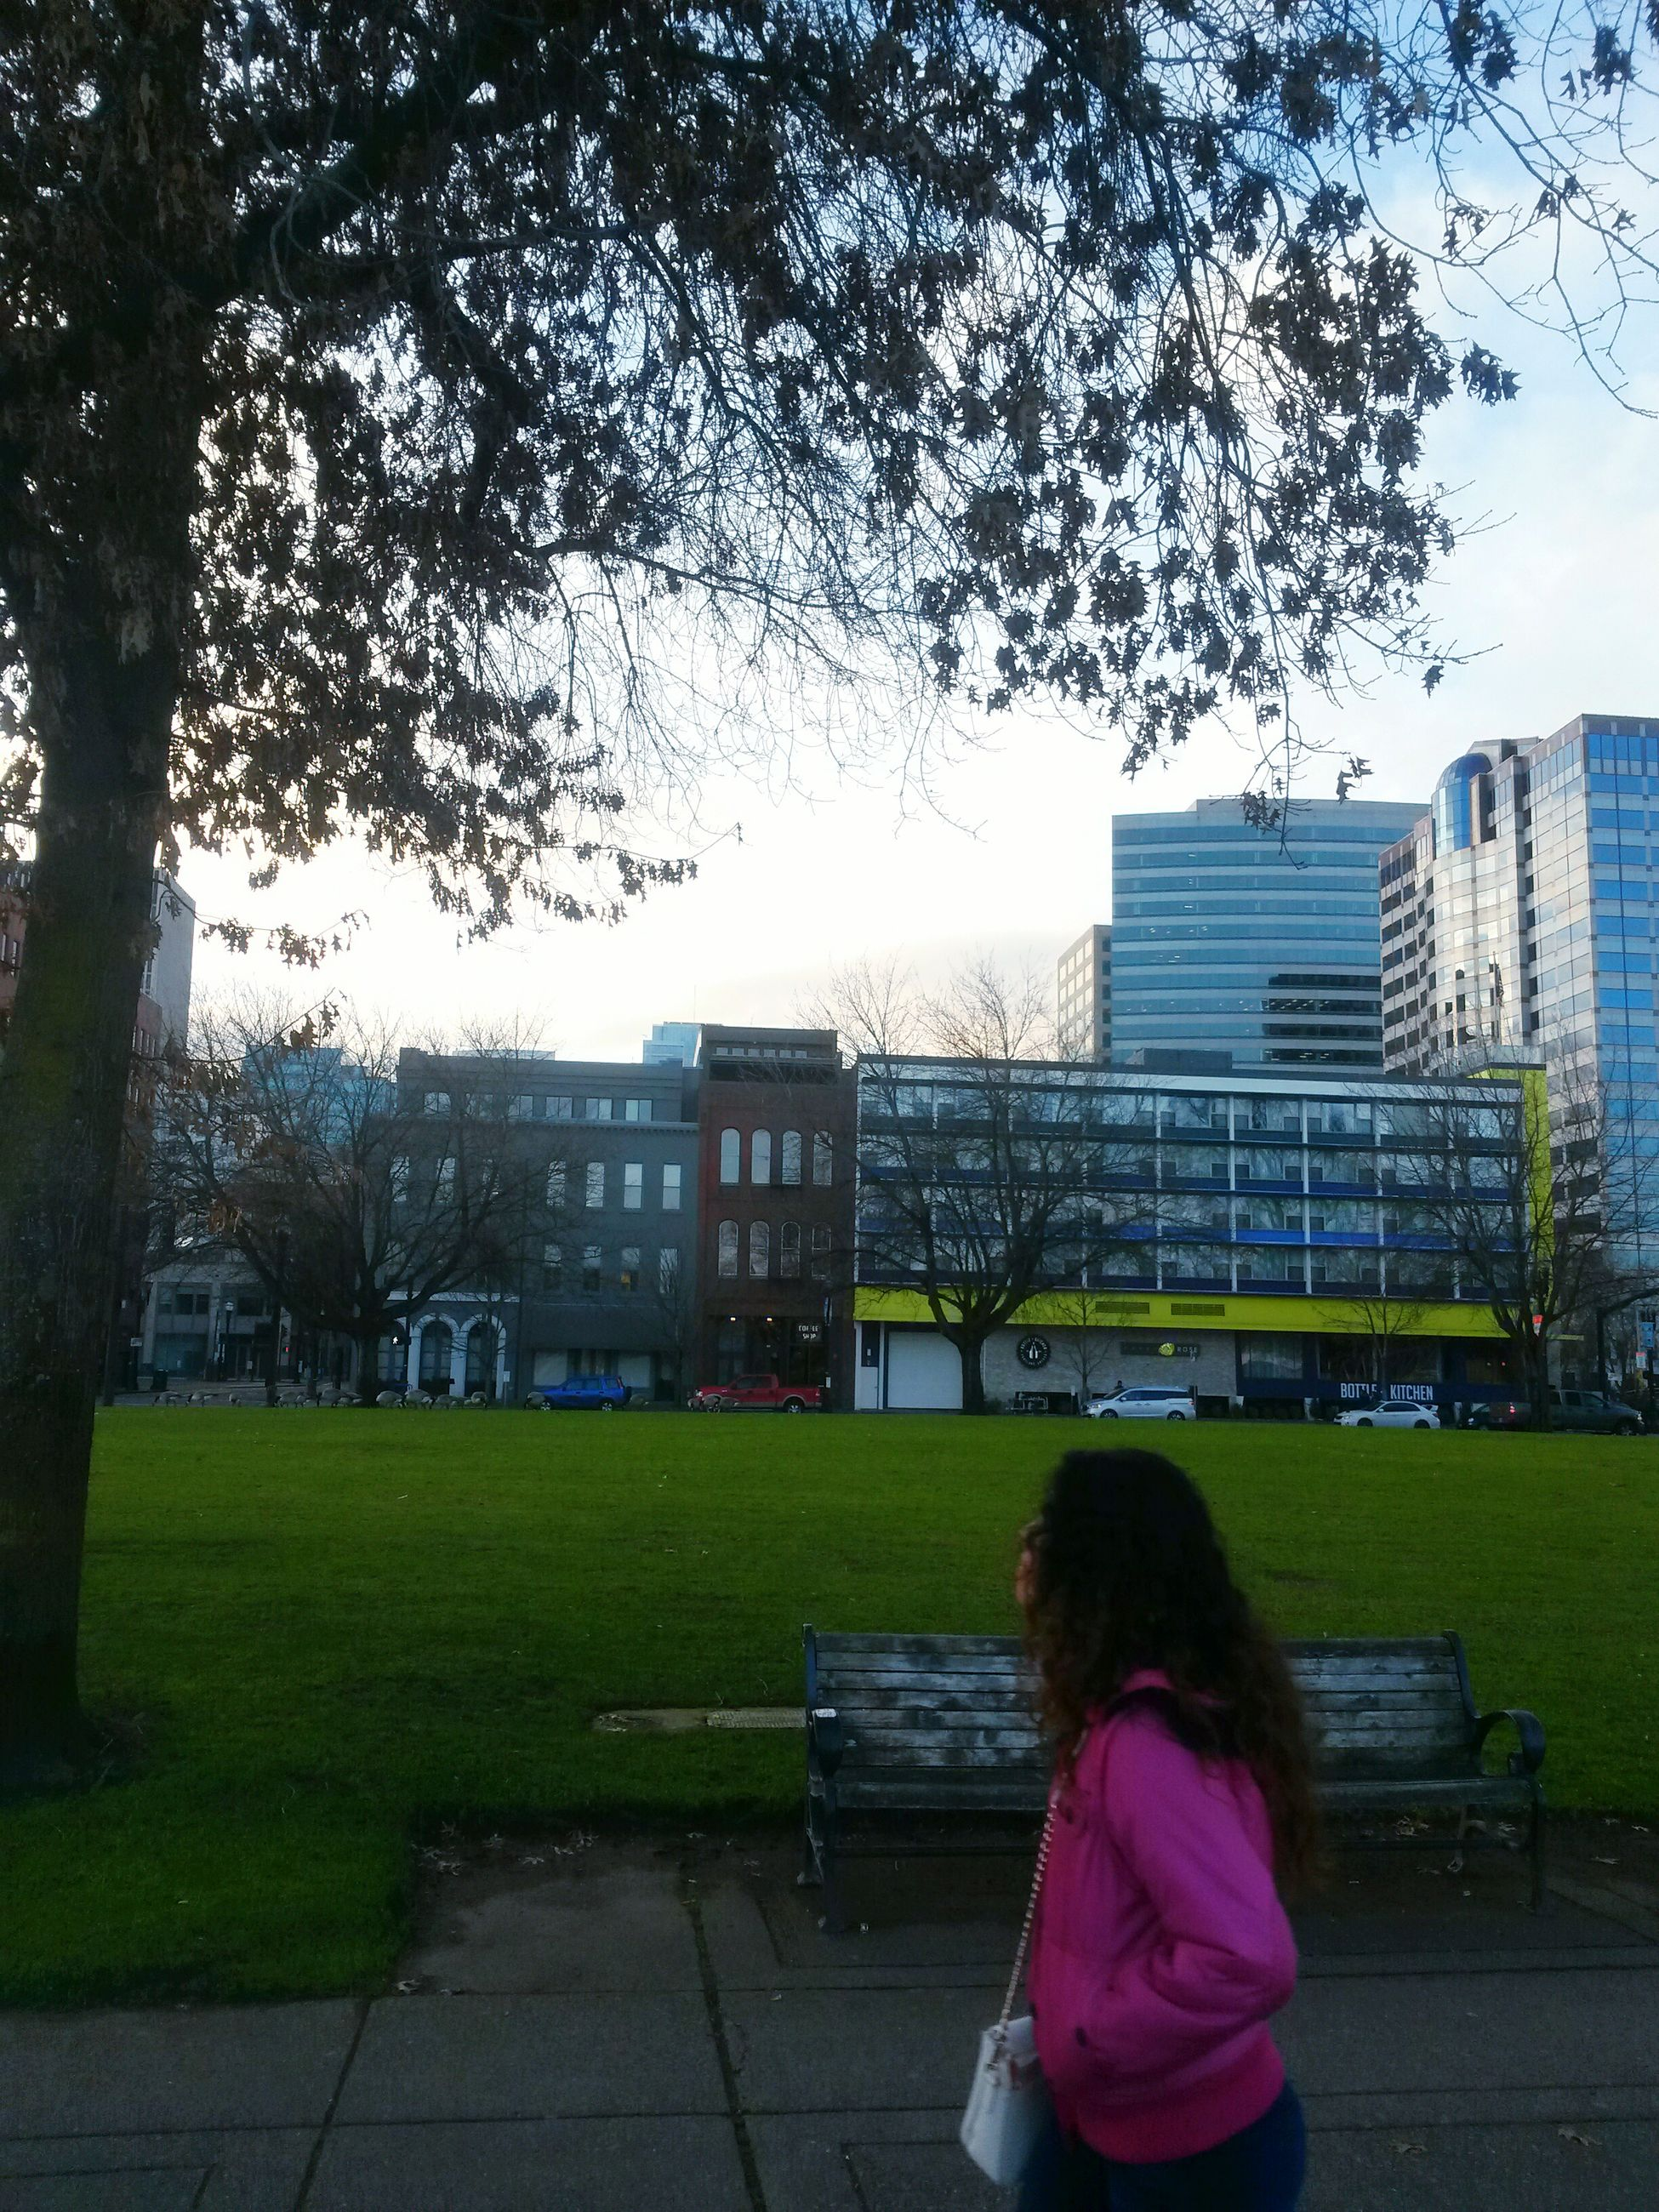 rear view, building exterior, architecture, real people, built structure, outdoors, lifestyles, one person, women, sitting, tree, day, leisure activity, city, grass, sky, nature, people, adult